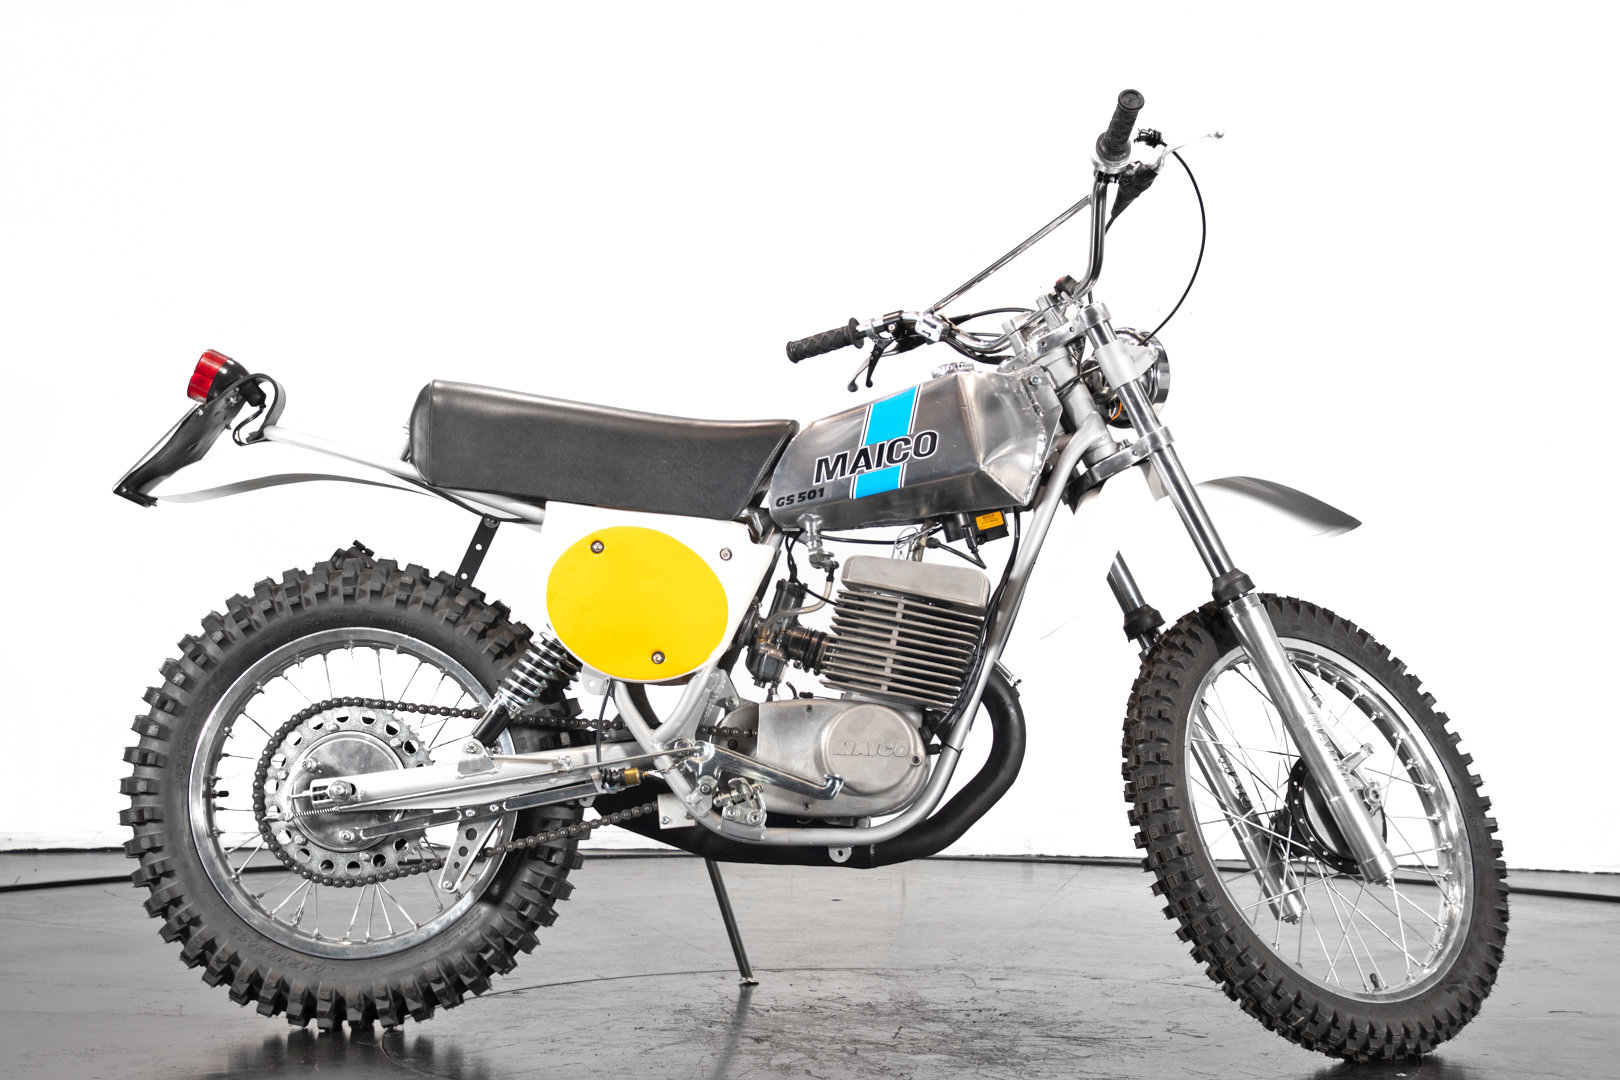 MAICO - GS 501 - 1976 For Sale (picture 2 of 6)